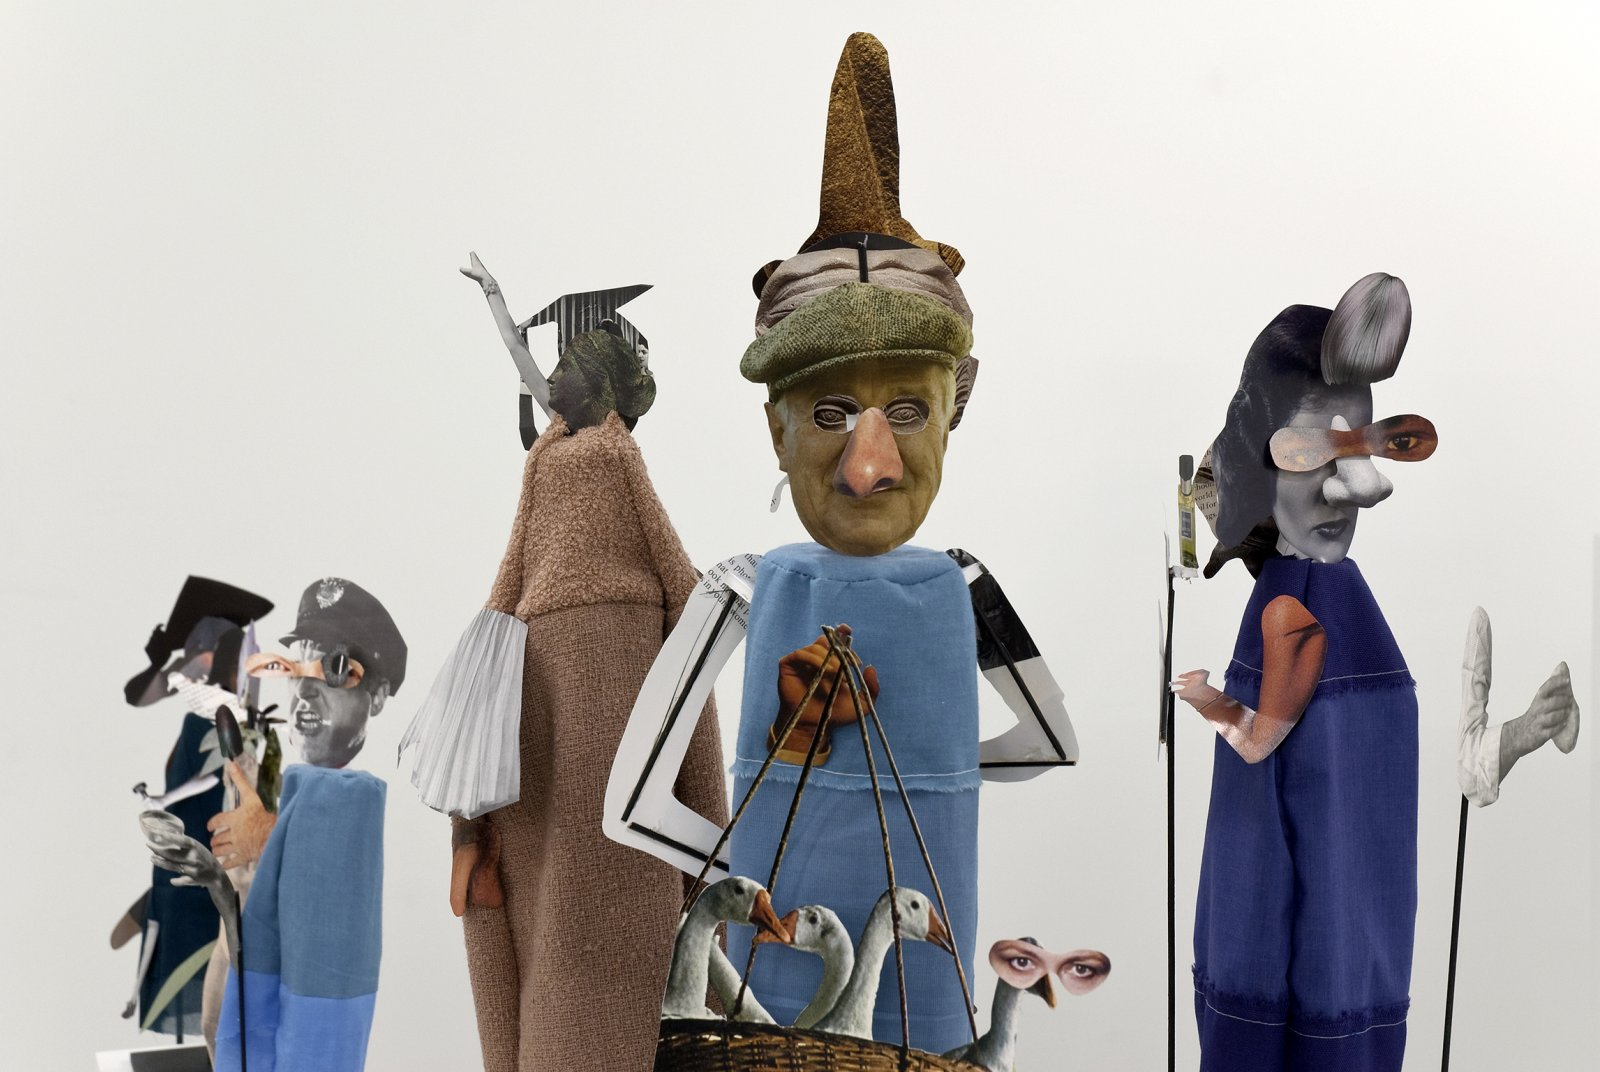 Geoffrey Farmer,The Surgeon and the Photographer(detail), 2009, paper, textile, wood, metal, 365 figures, each figure approximately: 18 x 5 x 5 in. (45 x 13 x 13 cm)